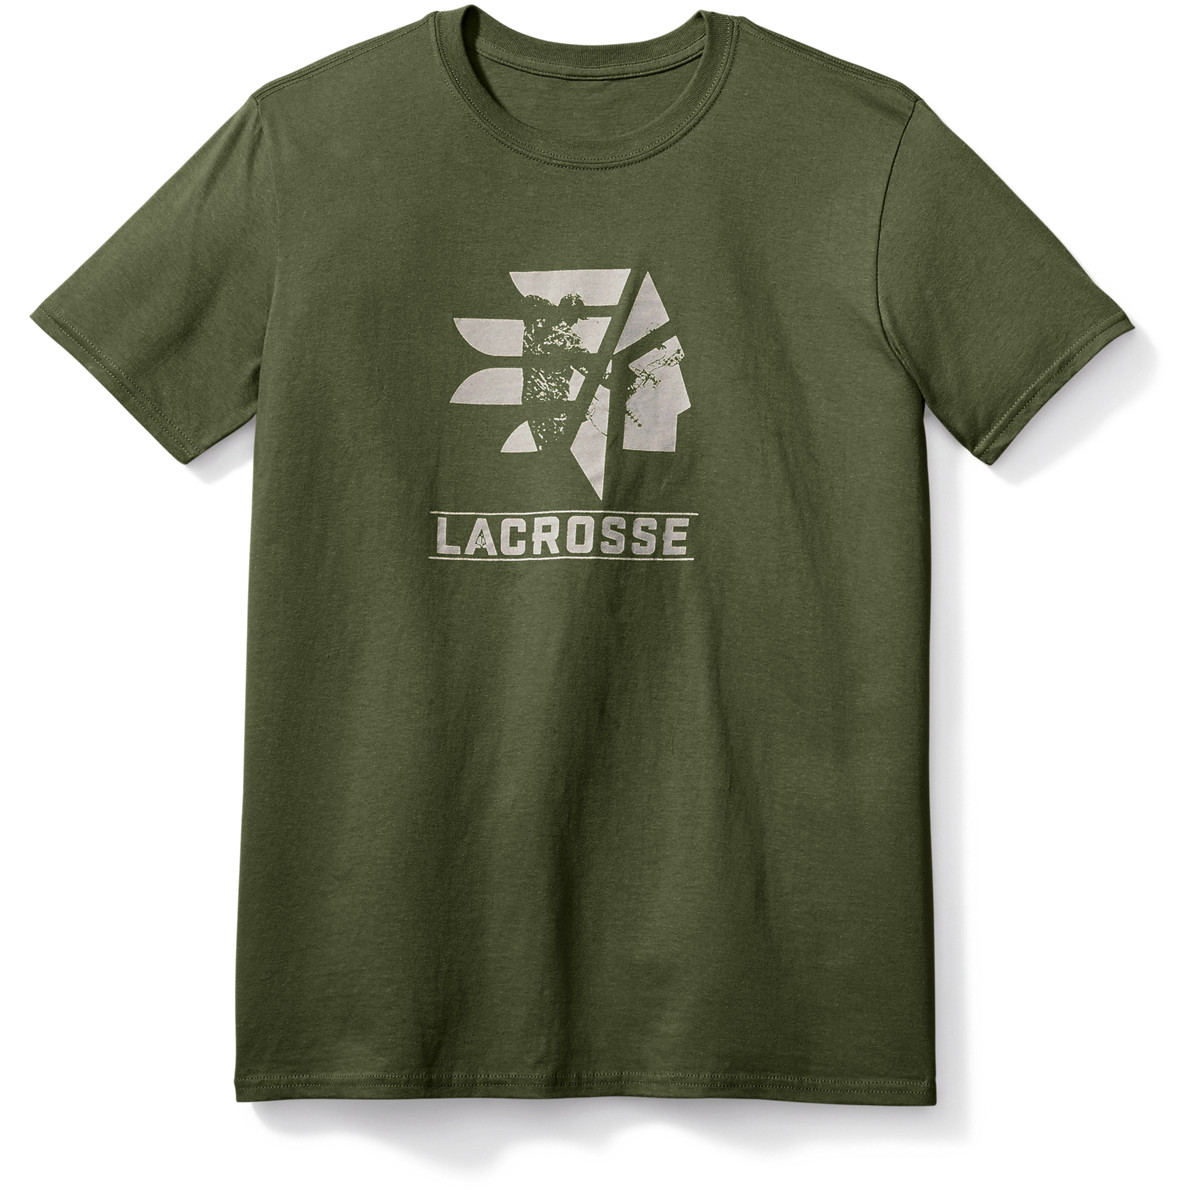 LaCrosse SS Tee - Green Bowhunting